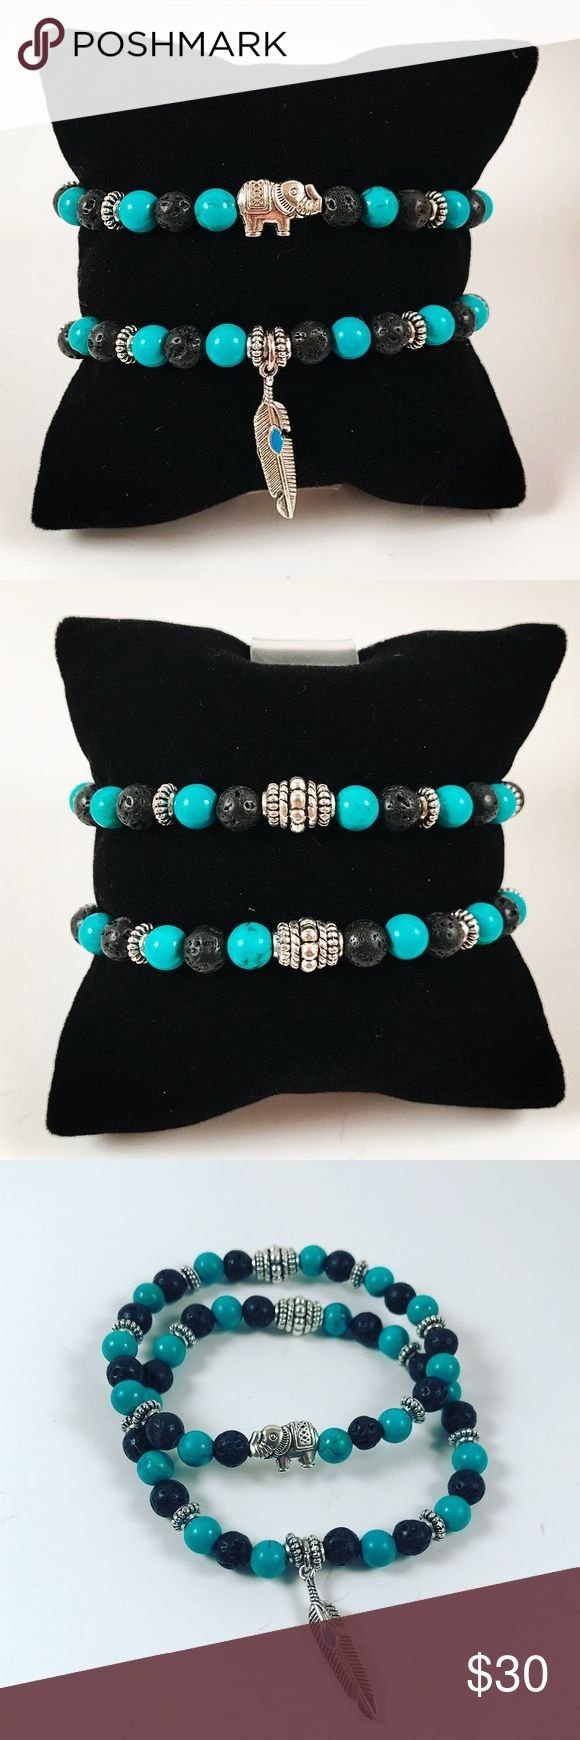 Women lava rock / turquoise / elephant bracelets Women beaded bracelets set . Both bracelets Fits most 5.5 to 7 inch wrist. Handmade by me , never worn by anyone. Made with black lava rocks / volcano beads. Turquoise beads . Tibetan silver Feather / leaf charm . Tibetan silver elephant charm. I ship fast!!✈️ Bundle and save! ( 10 % off bundles) REASONABLE offers considered. Any questions let me know! NO PAYPAL ! Jewelry Bracelets